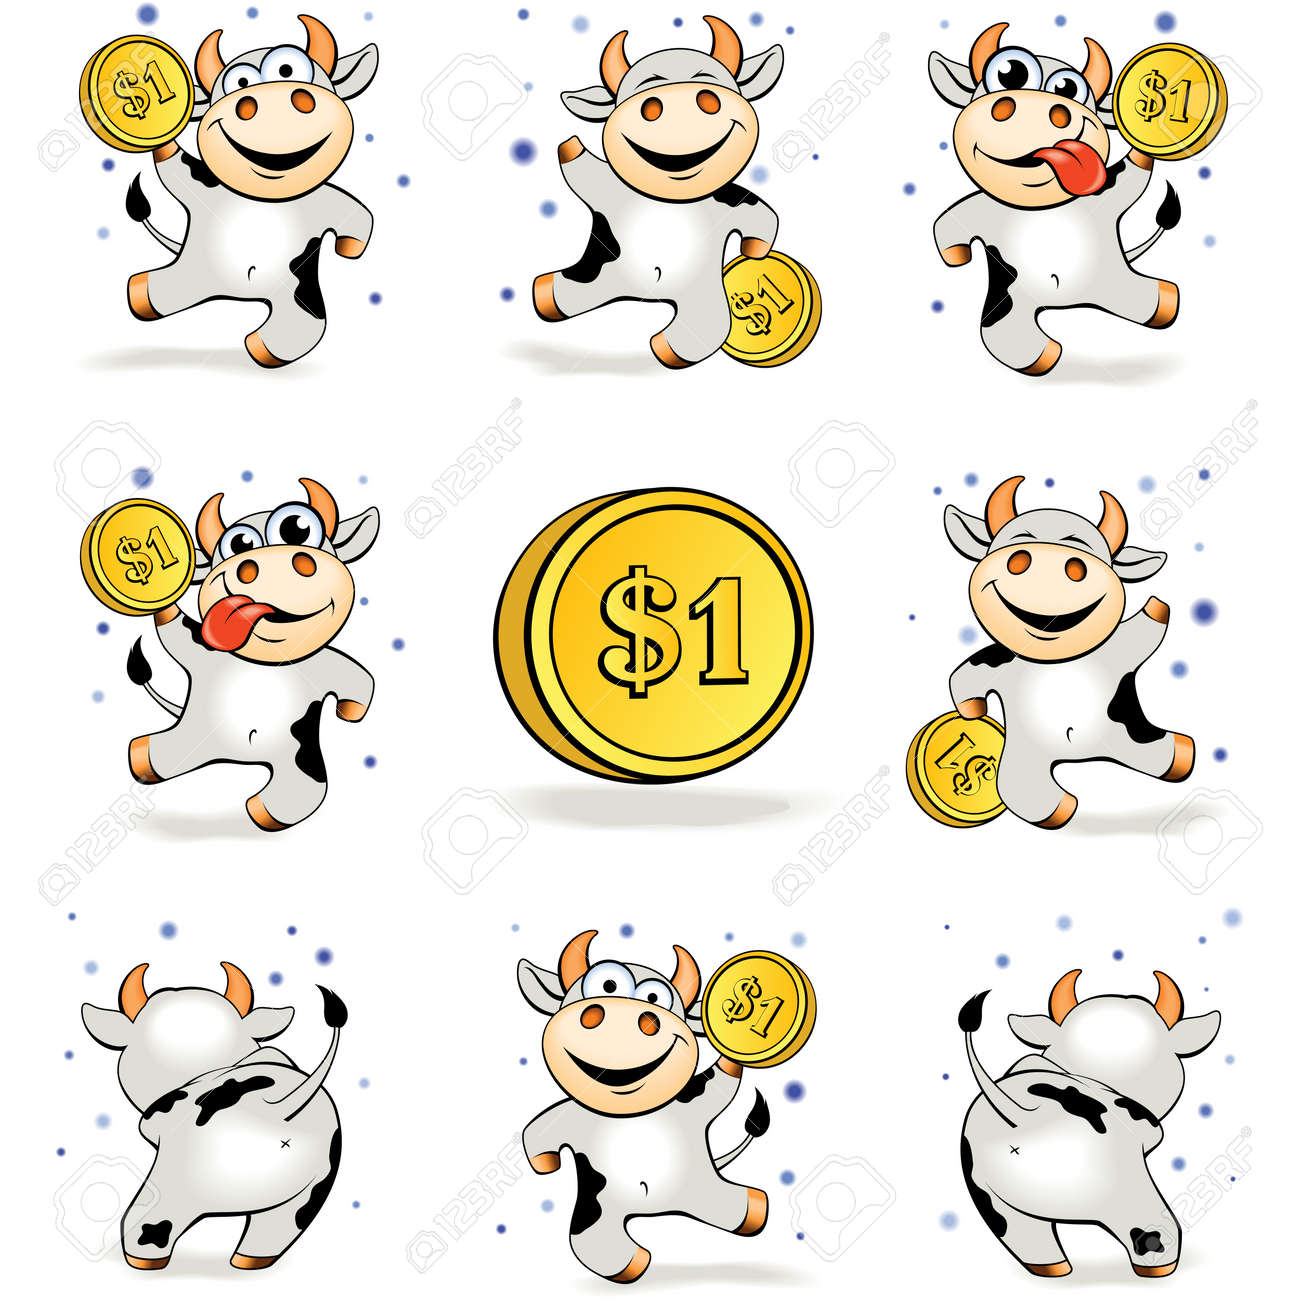 funny cartoon crazy young cow with gold coin 1 dollar is happy royalty free cliparts vectors and stock illustration image 75278048 funny cartoon crazy young cow with gold coin 1 dollar is happy